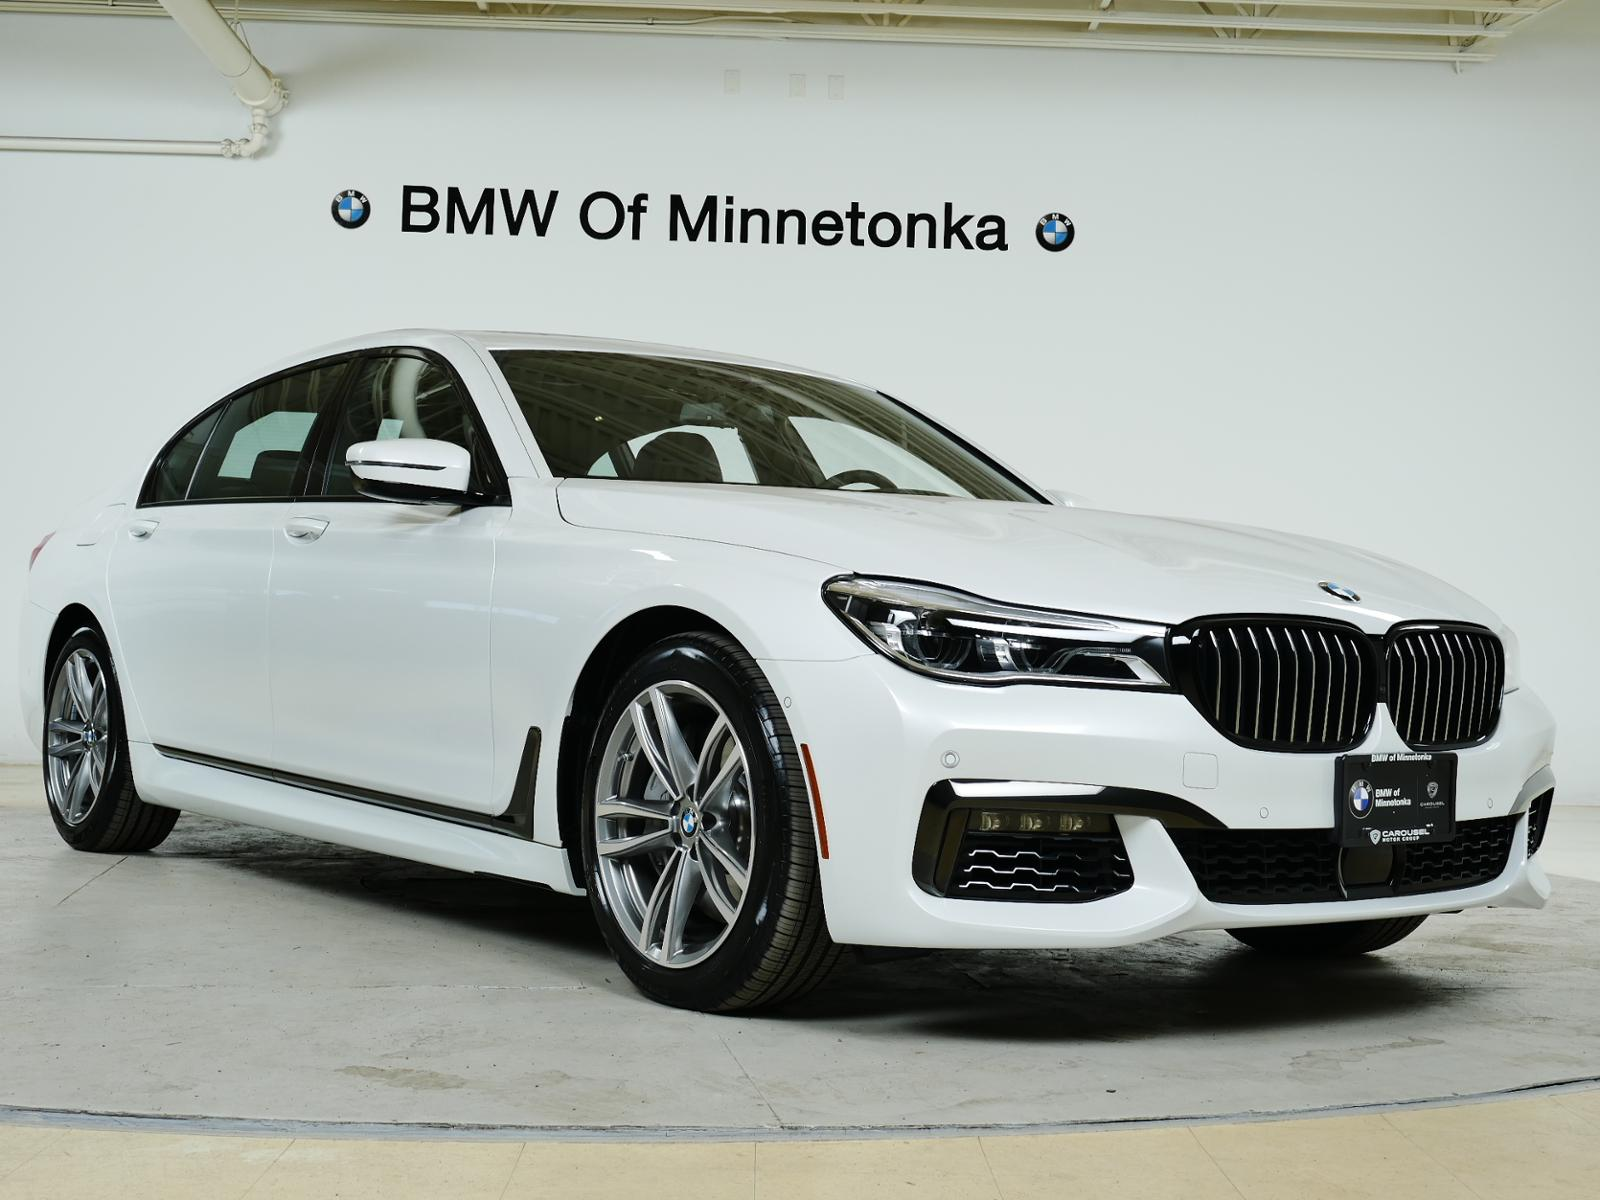 2019 BMW 7 Series 750i Xdrive   8cyl Sedan in Minnetonka, MN